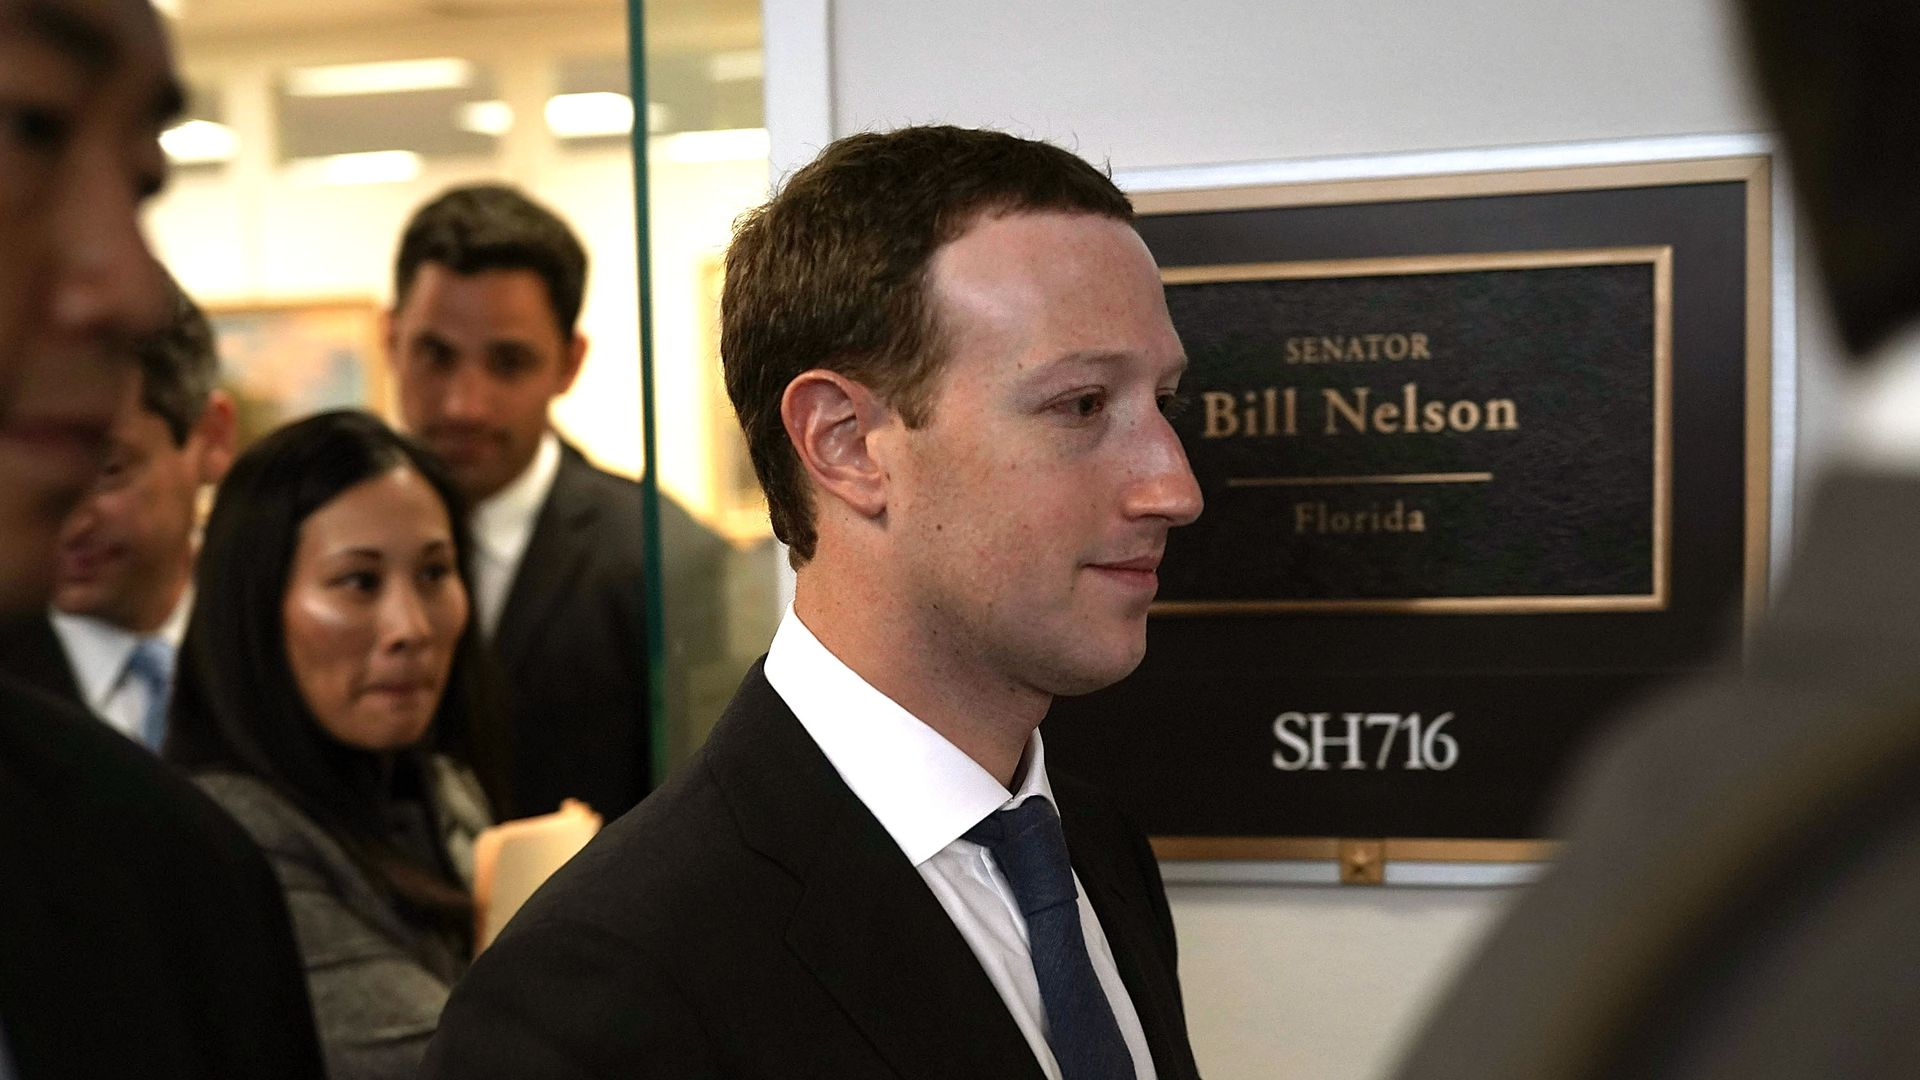 Facebook CEO Mark Zuckerberg walks by a sign for Bill Nelson's office